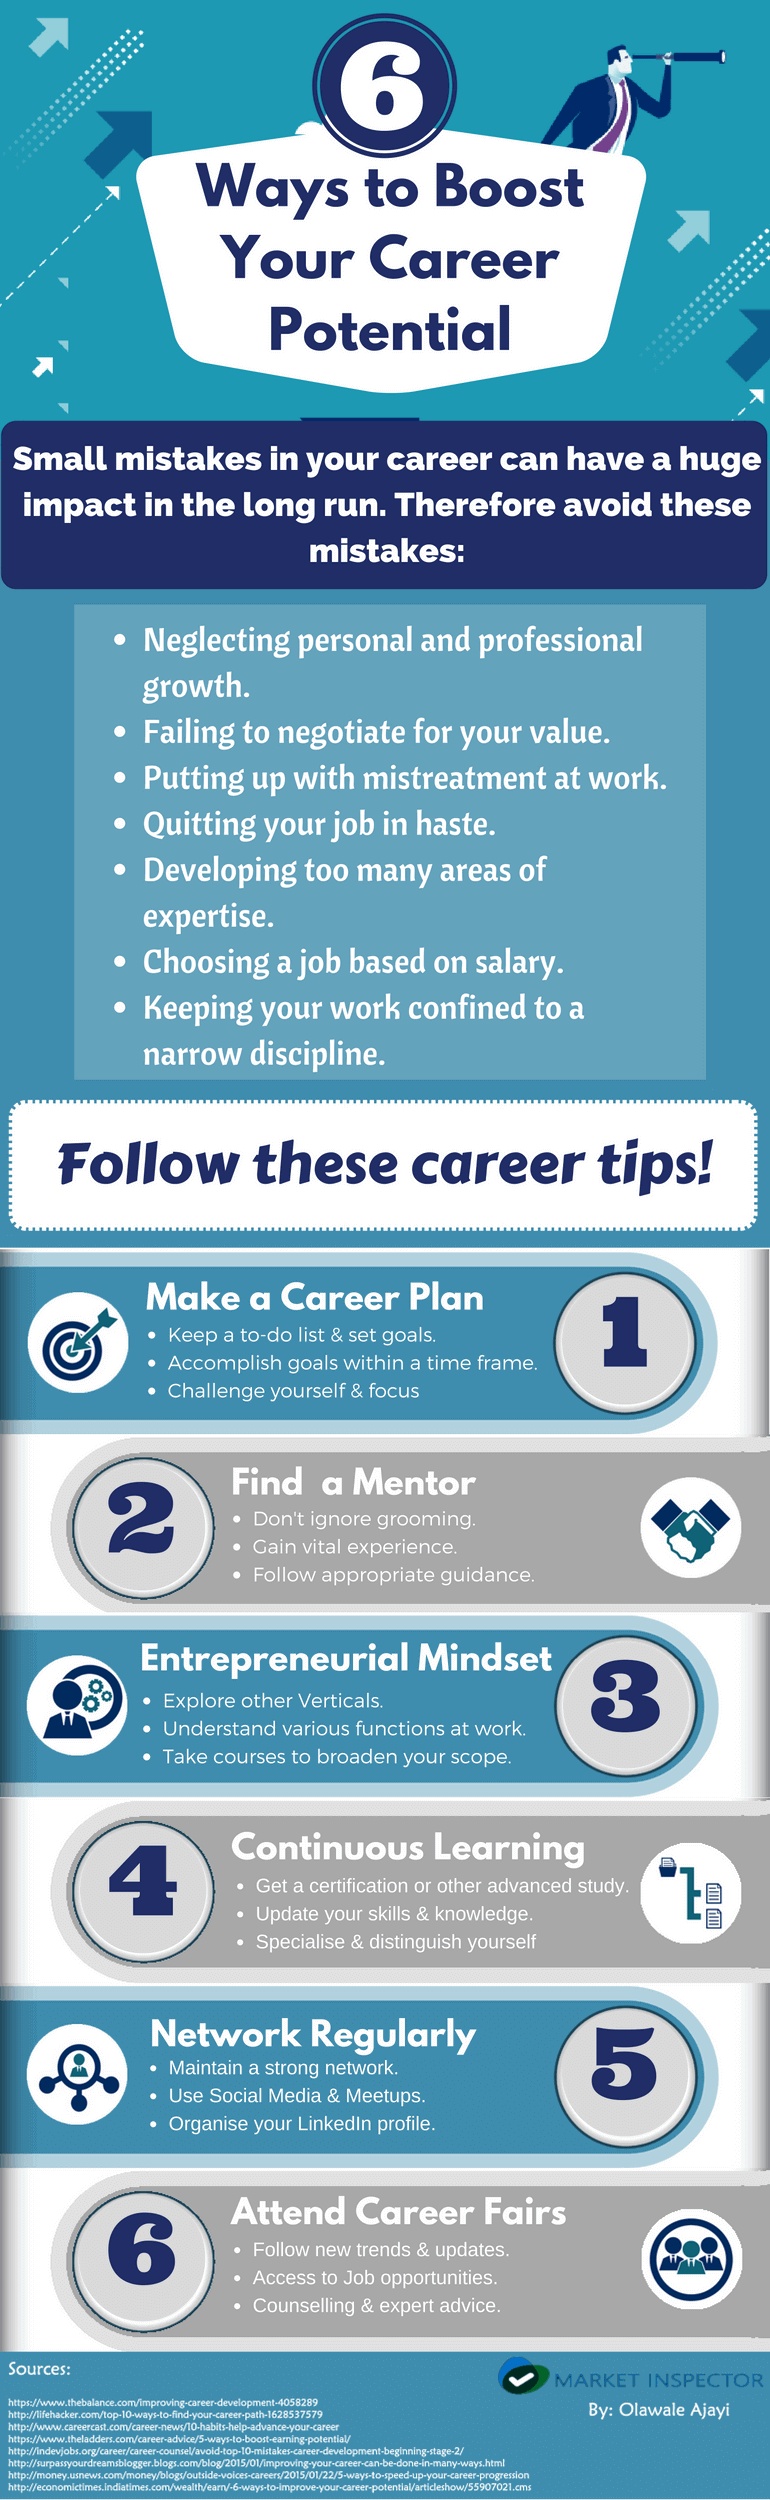 Career Potential Infographic